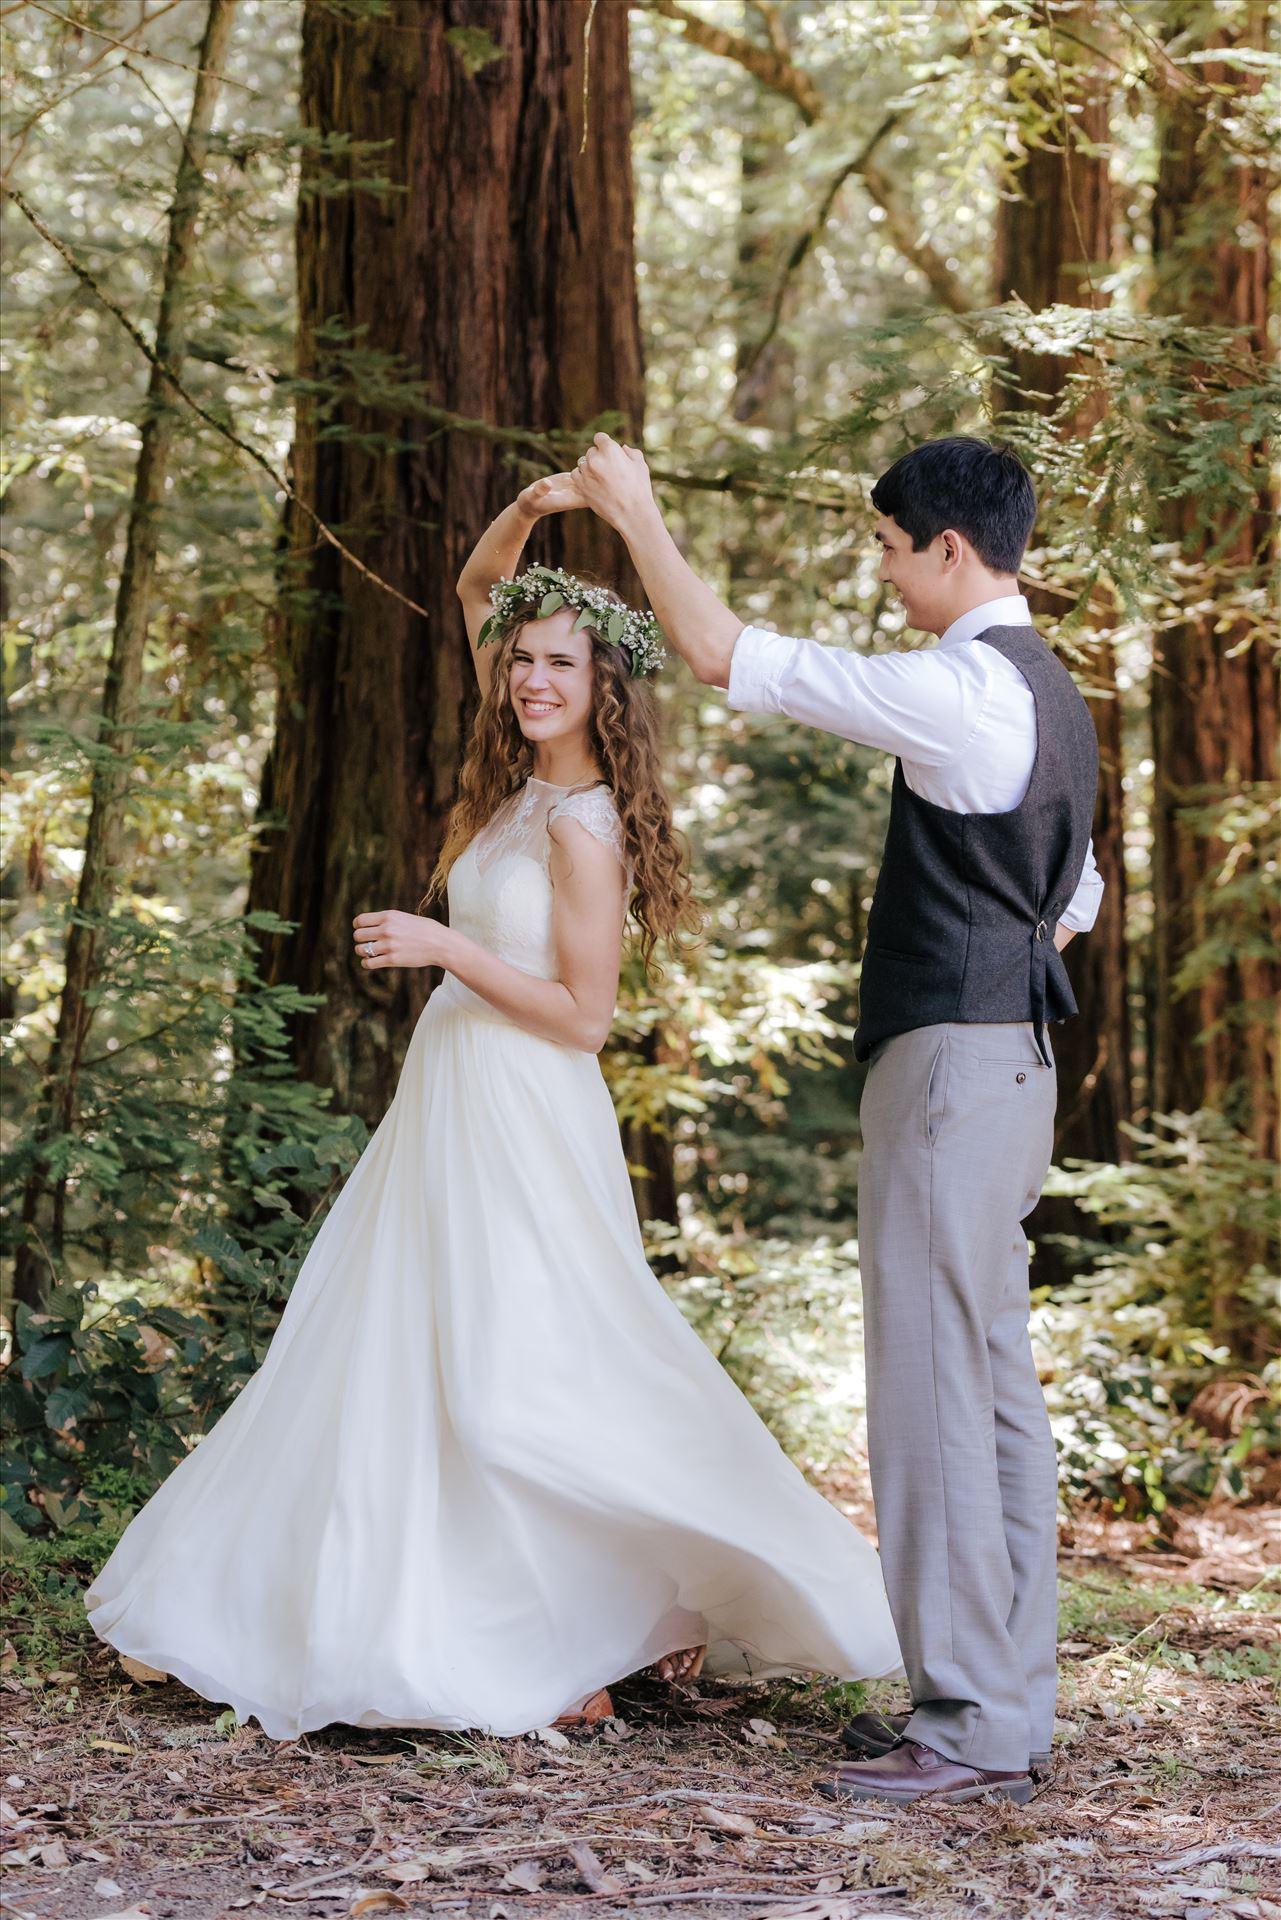 FW-6667.JPGMt Madonna wedding in the redwoods outside of Watsonville, California with a romantic and classic vibe by sarah williams of mirror's edge photography a san luis obispo wedding photographer.  Bride and Groom dancing in the forest